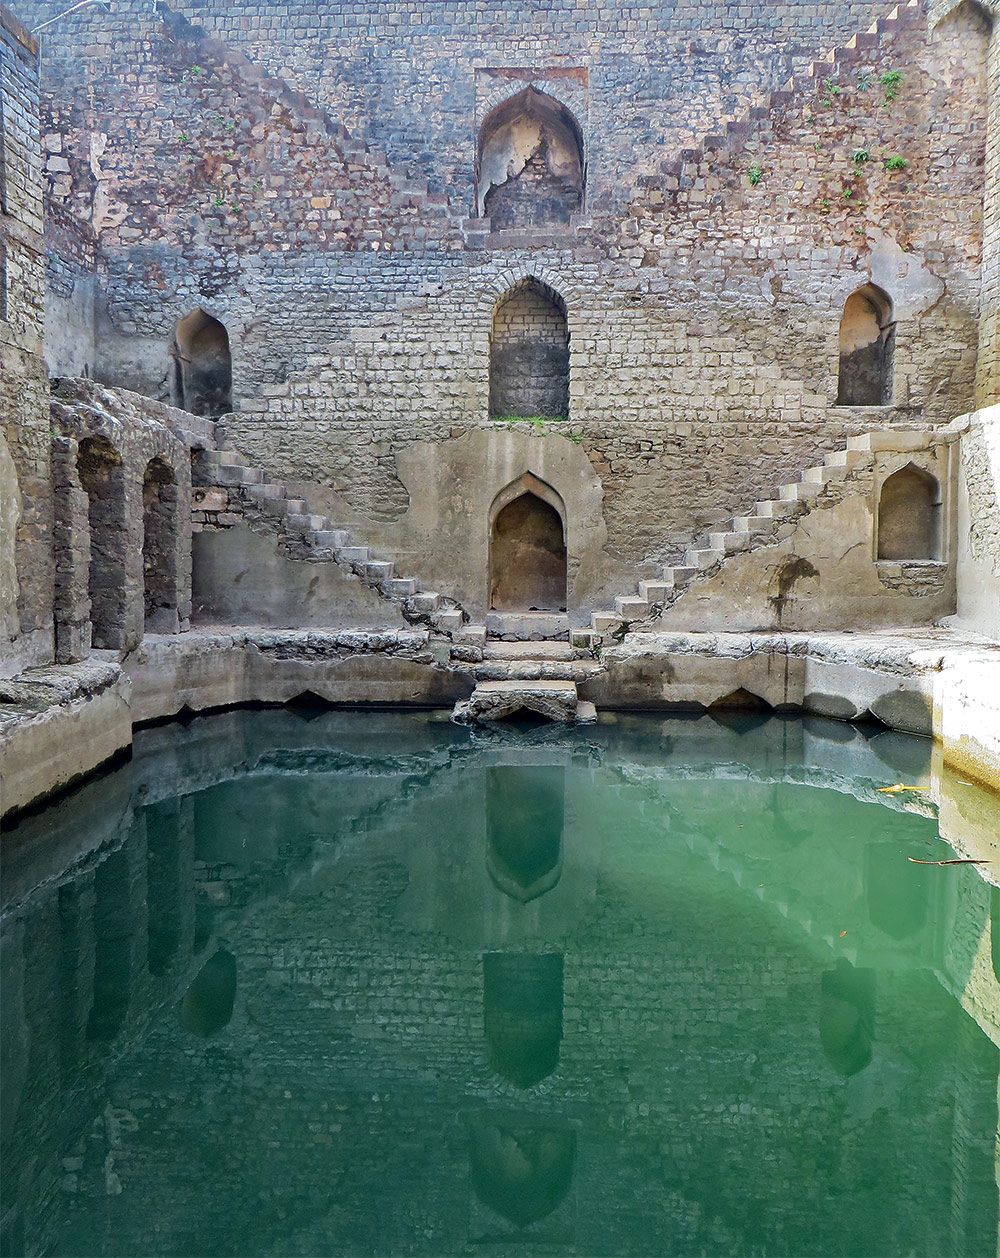 The Vanishing Stepwells of India - Victoria Lautman (Ujala Baoli Mandu. Madhya Pradesh. Late 15th-early 16th century)